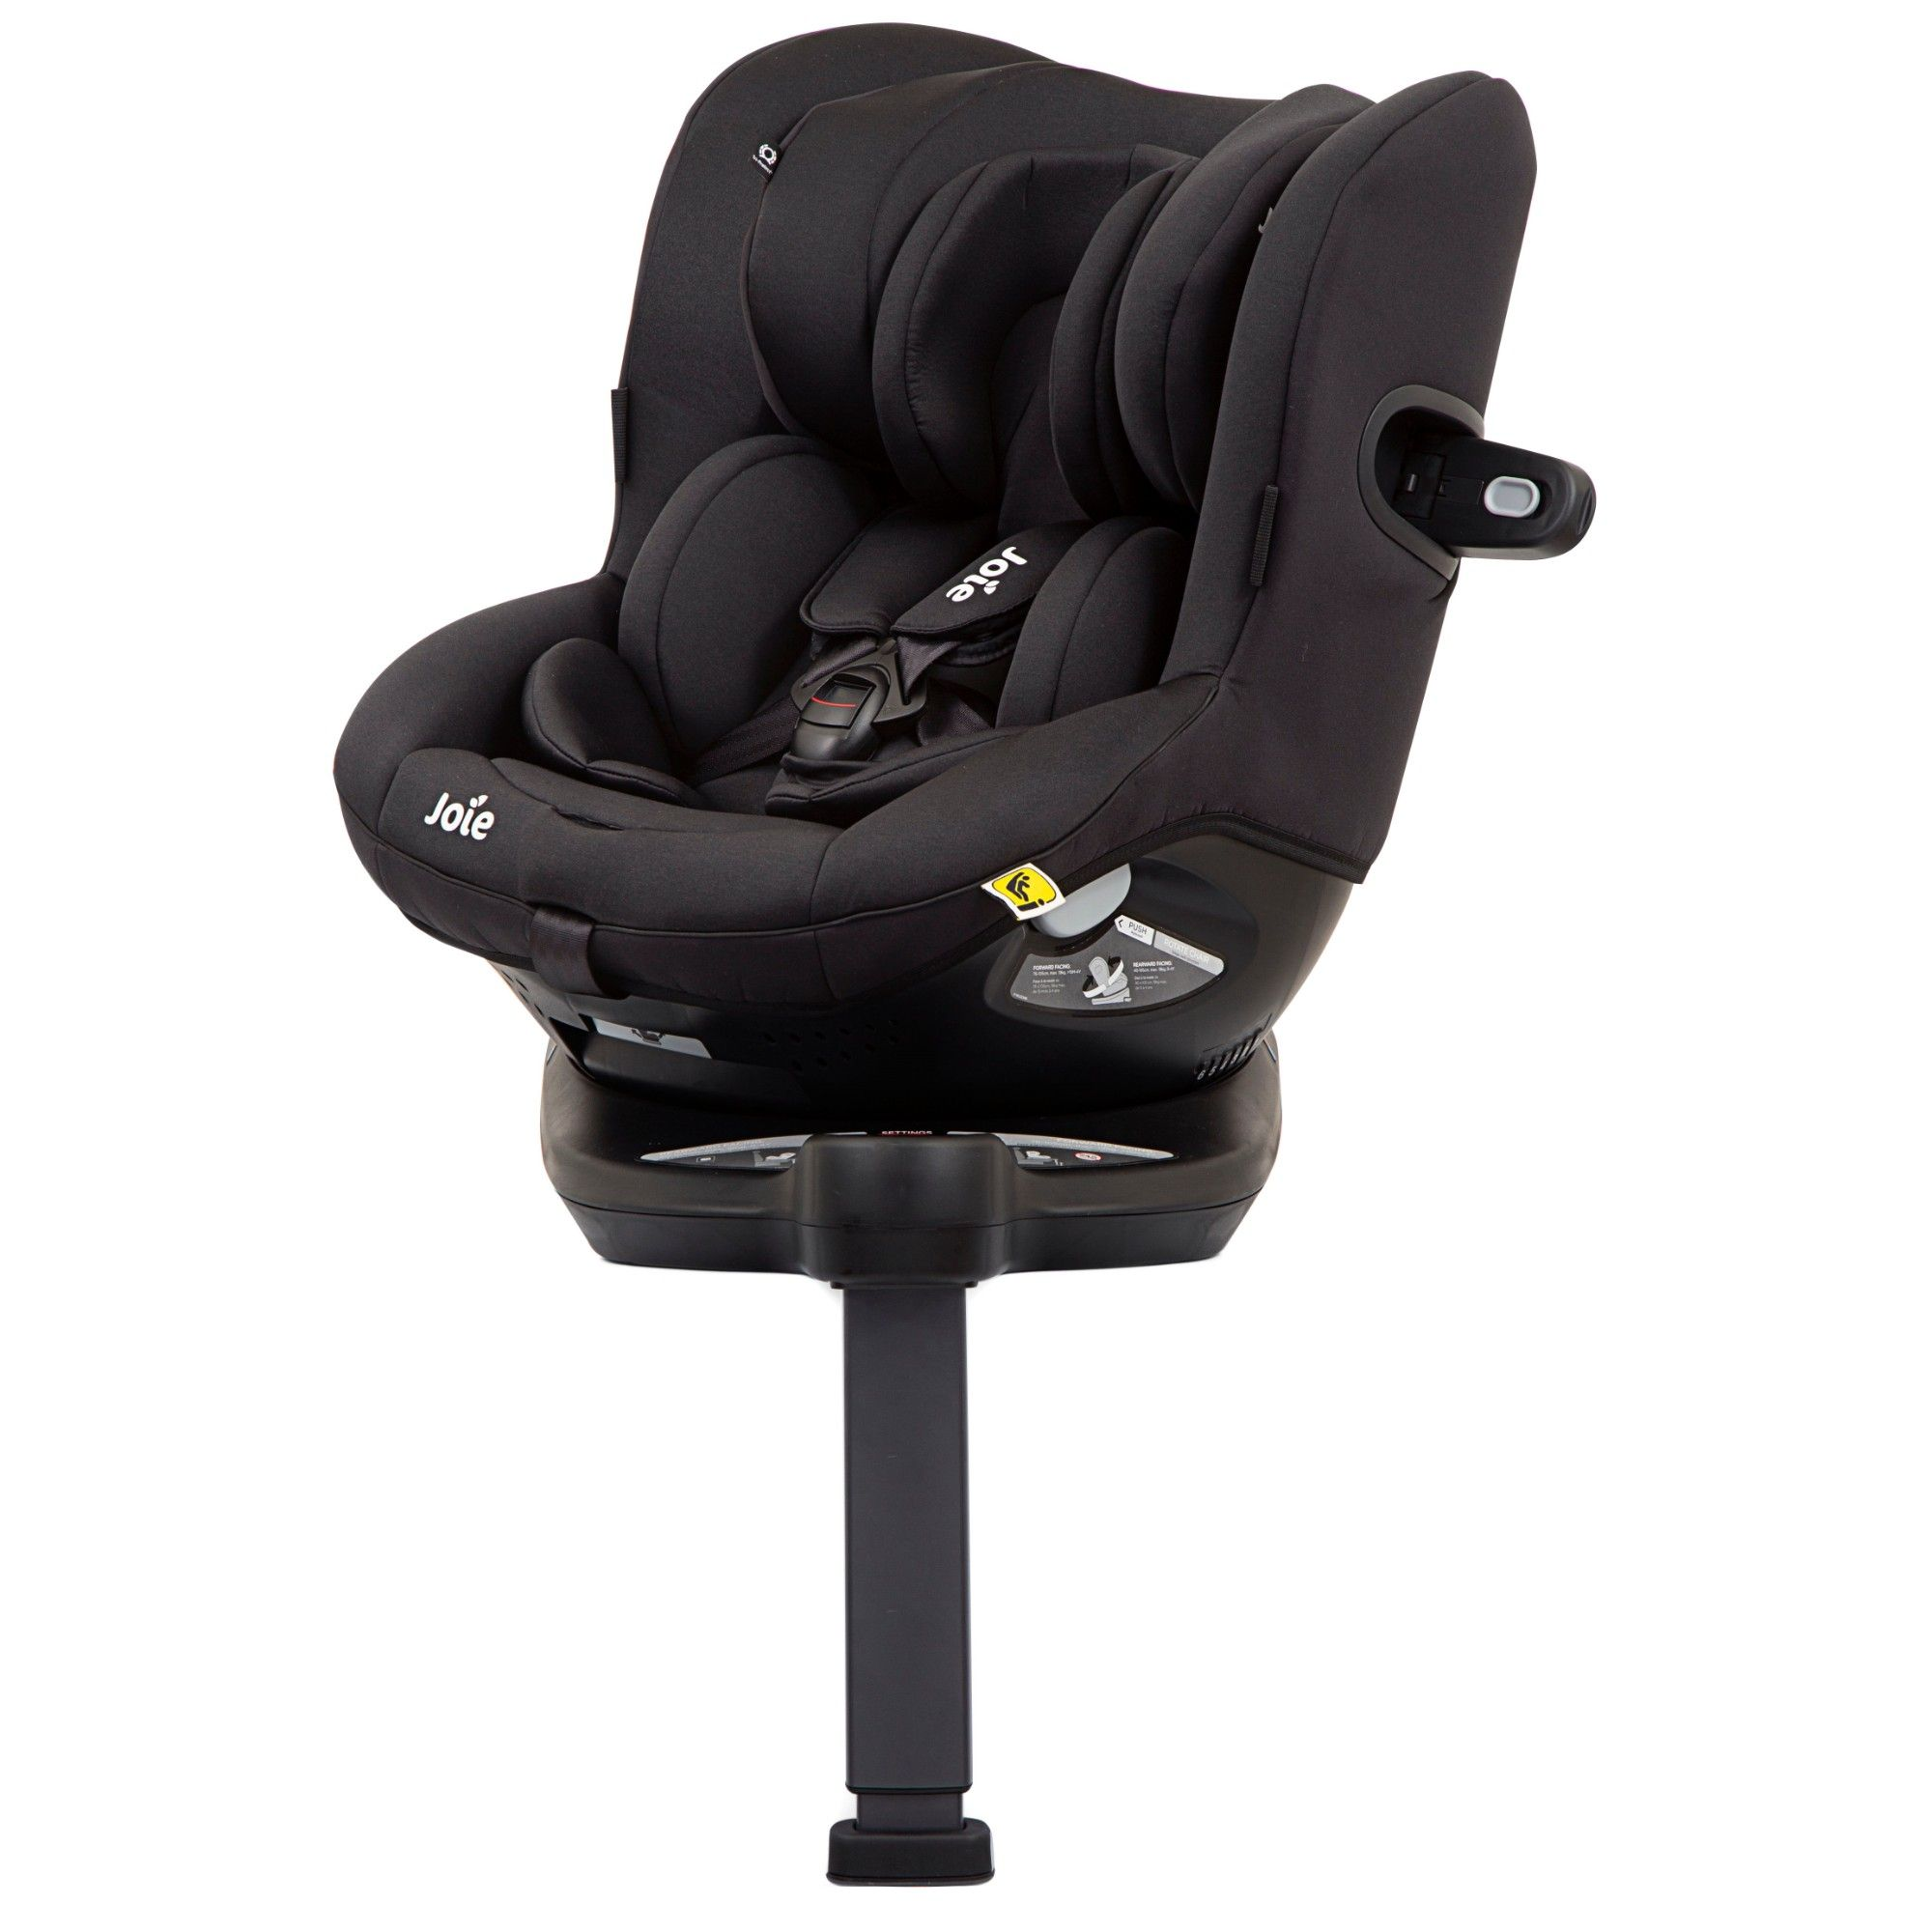 Joie 360 Isofix Installation Joie I Spin 360 Extended Rearward Facing Isofix Car Seat 4 Years Black